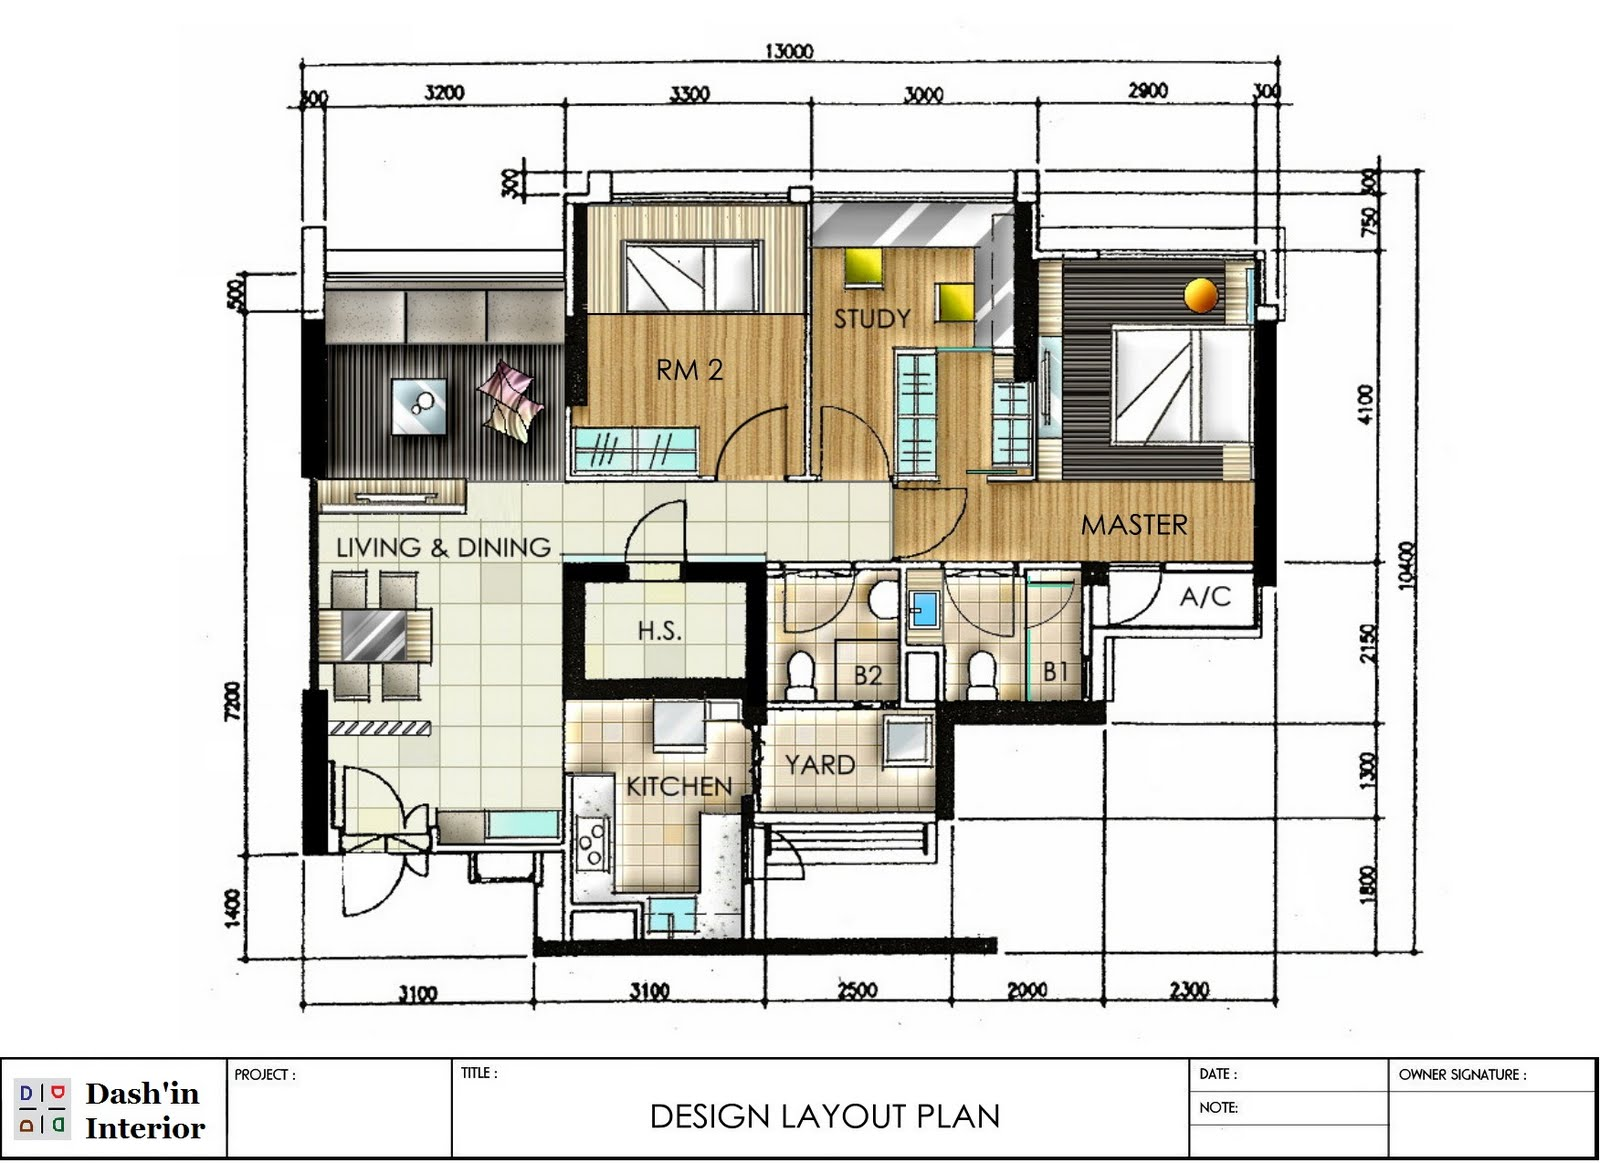 Dash 39 in interior hand drawn designs floor plan layout Interior house plans